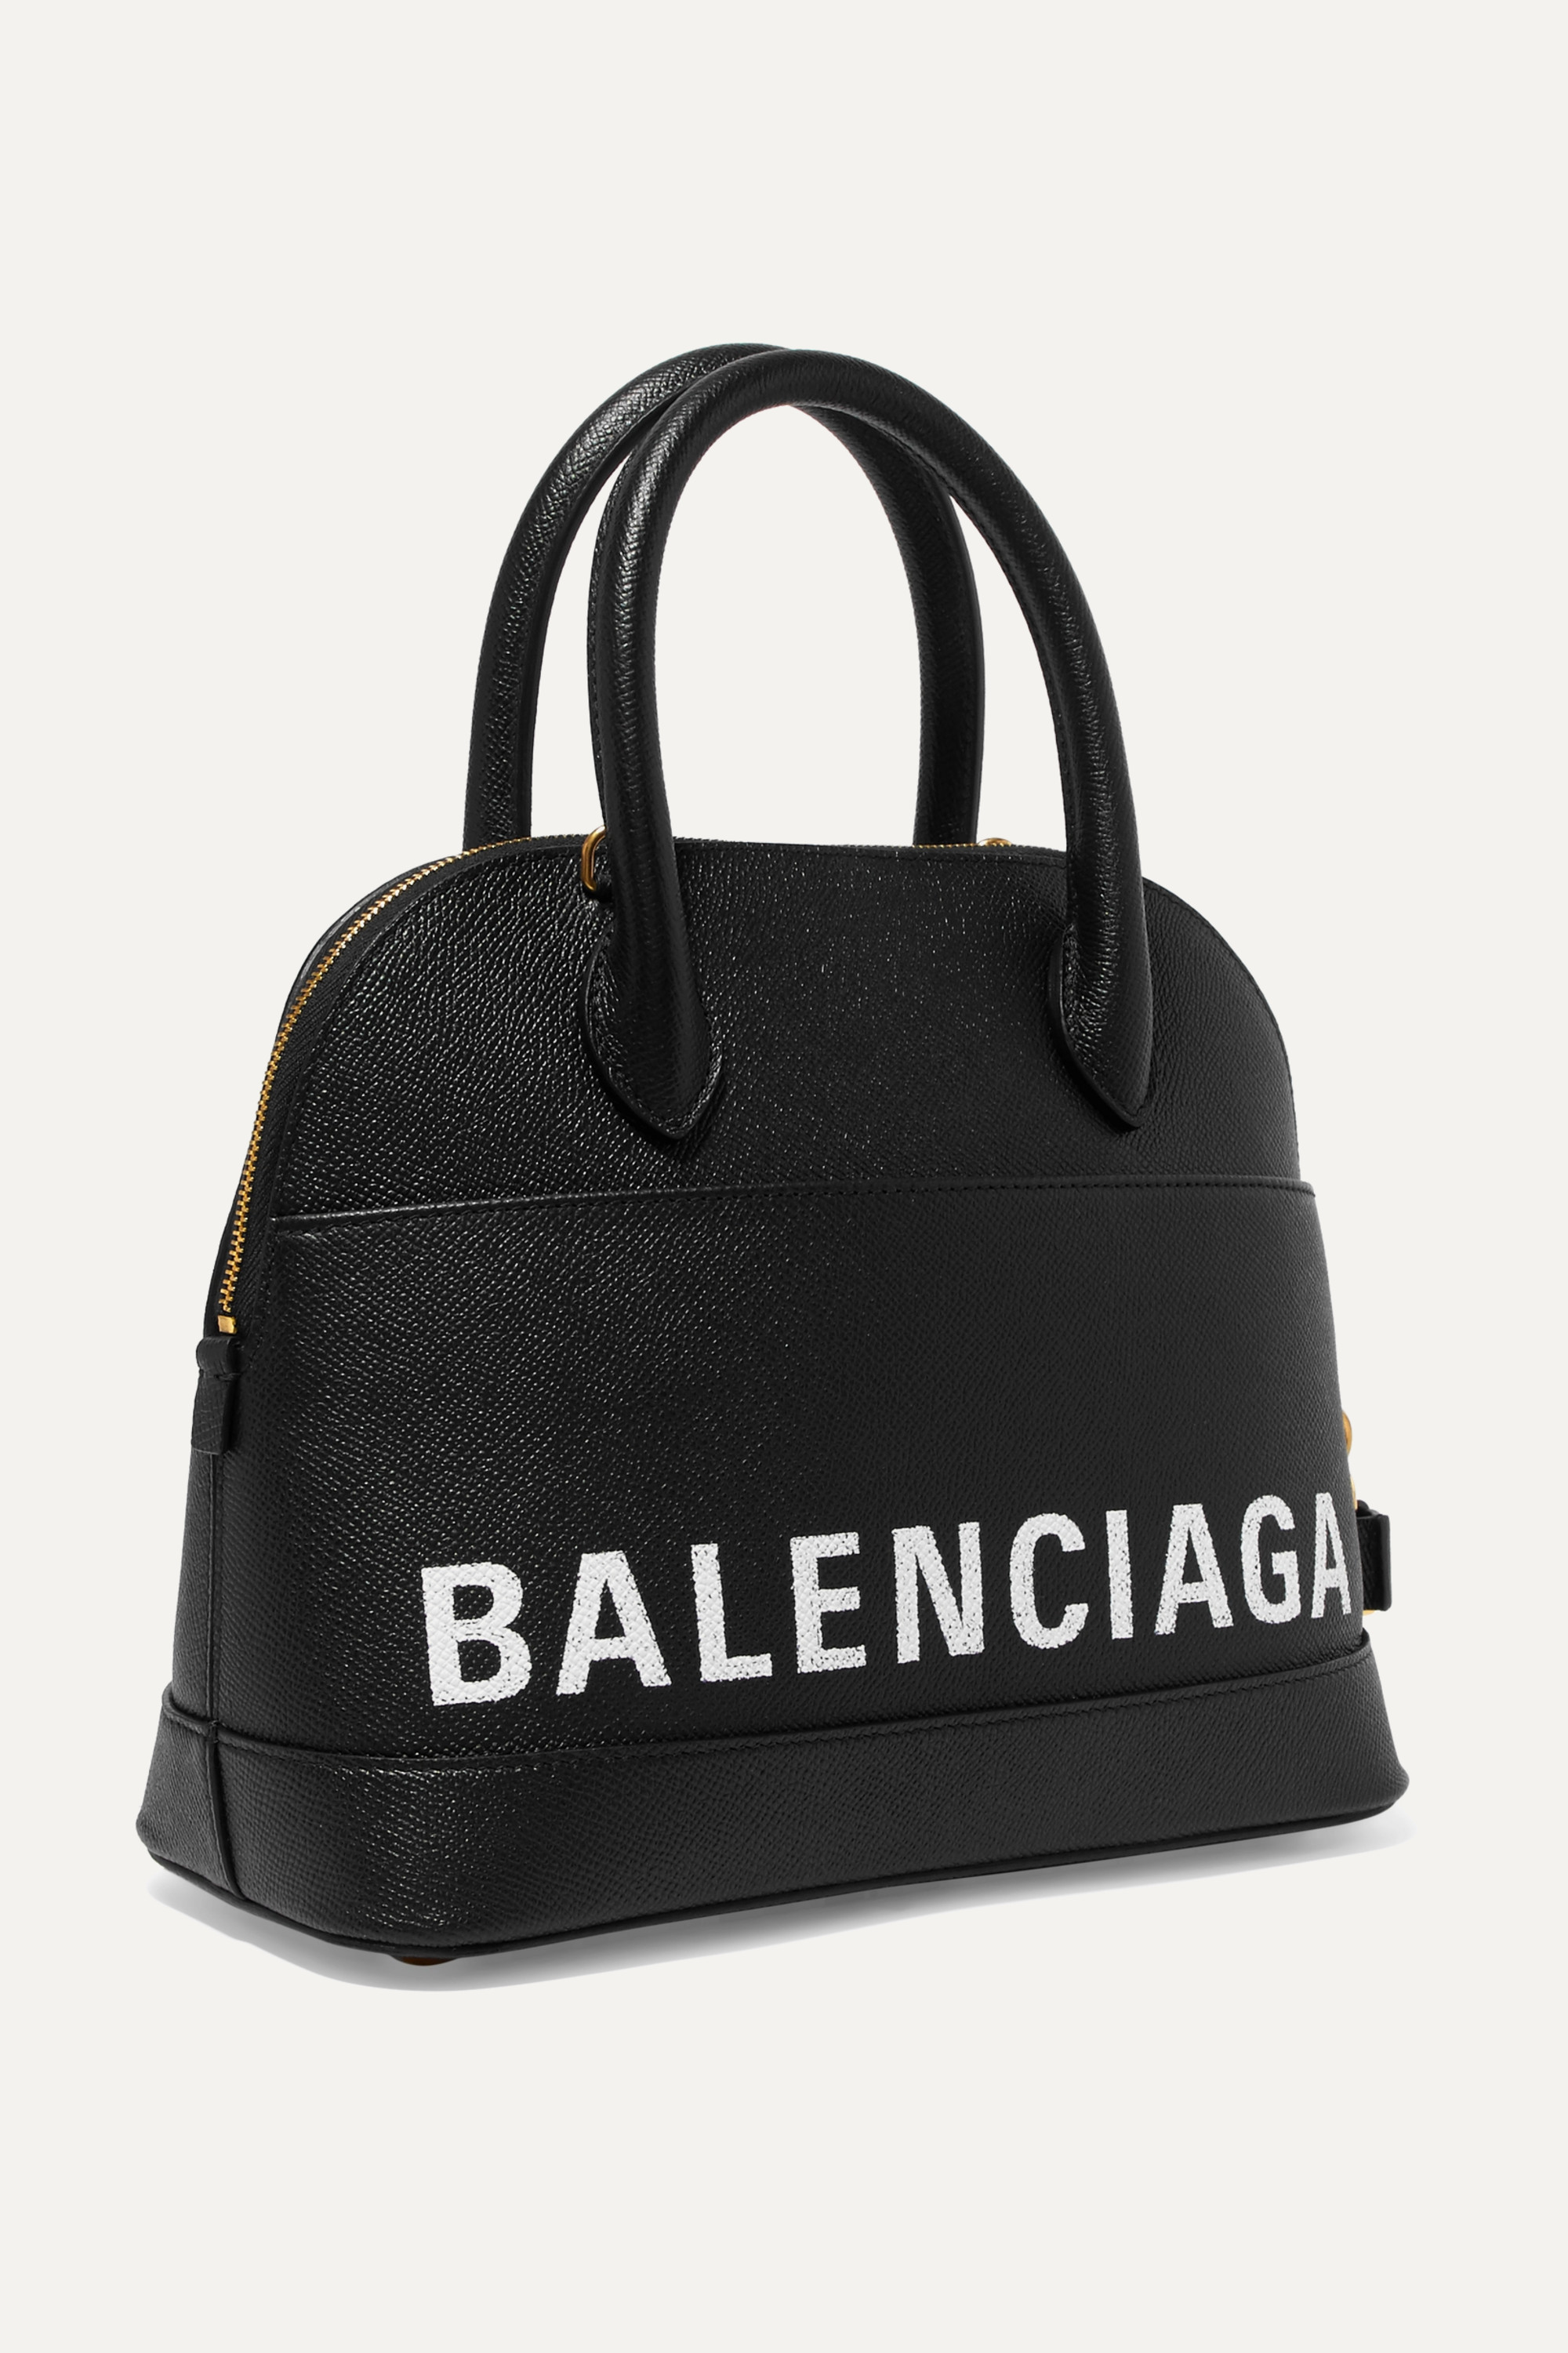 Balenciaga Ville small printed leather tote